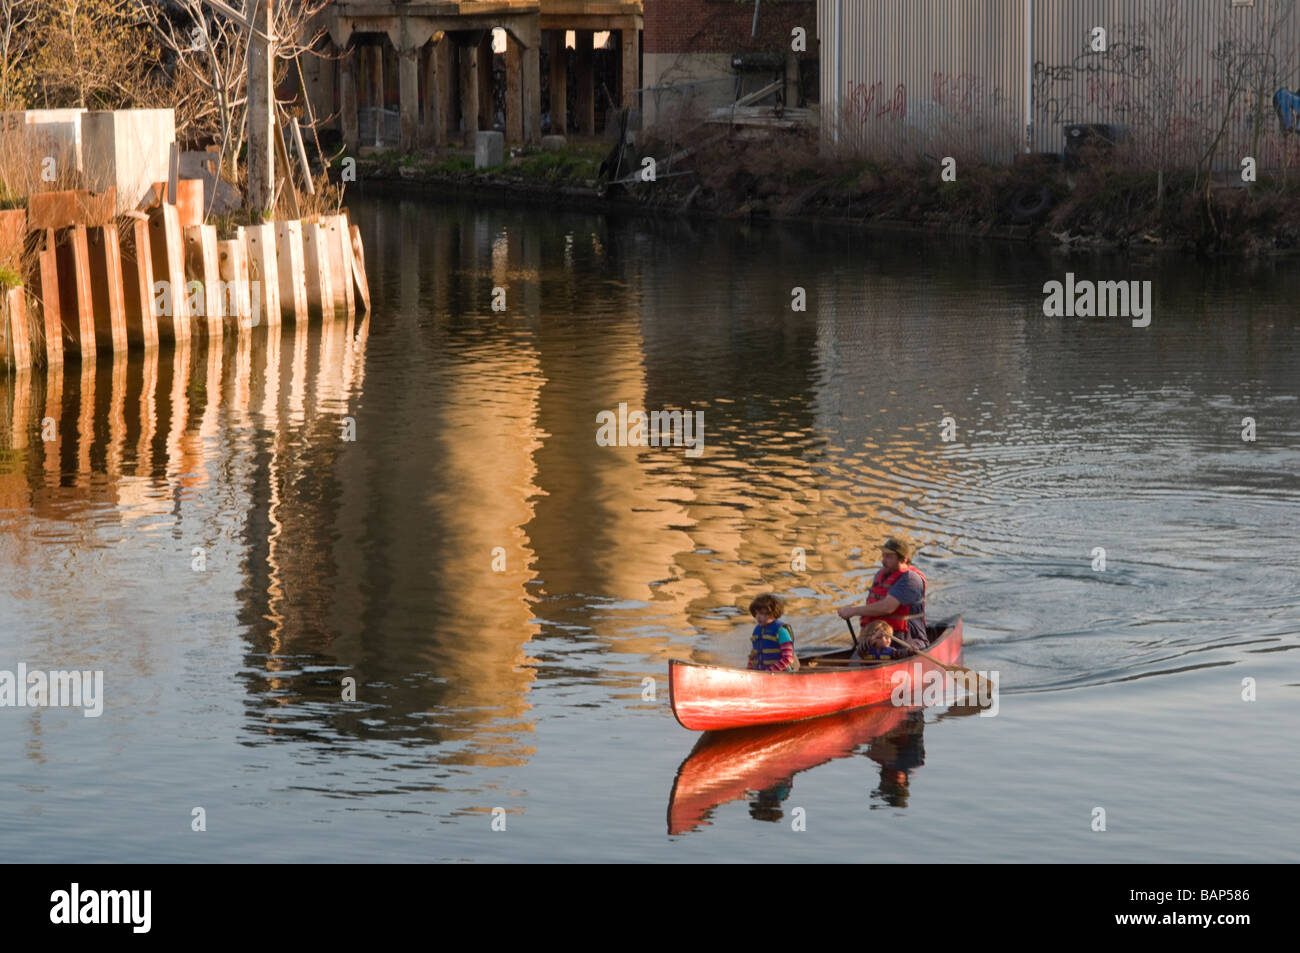 Man and two children canoe on the Gowanus Canal - Stock Image